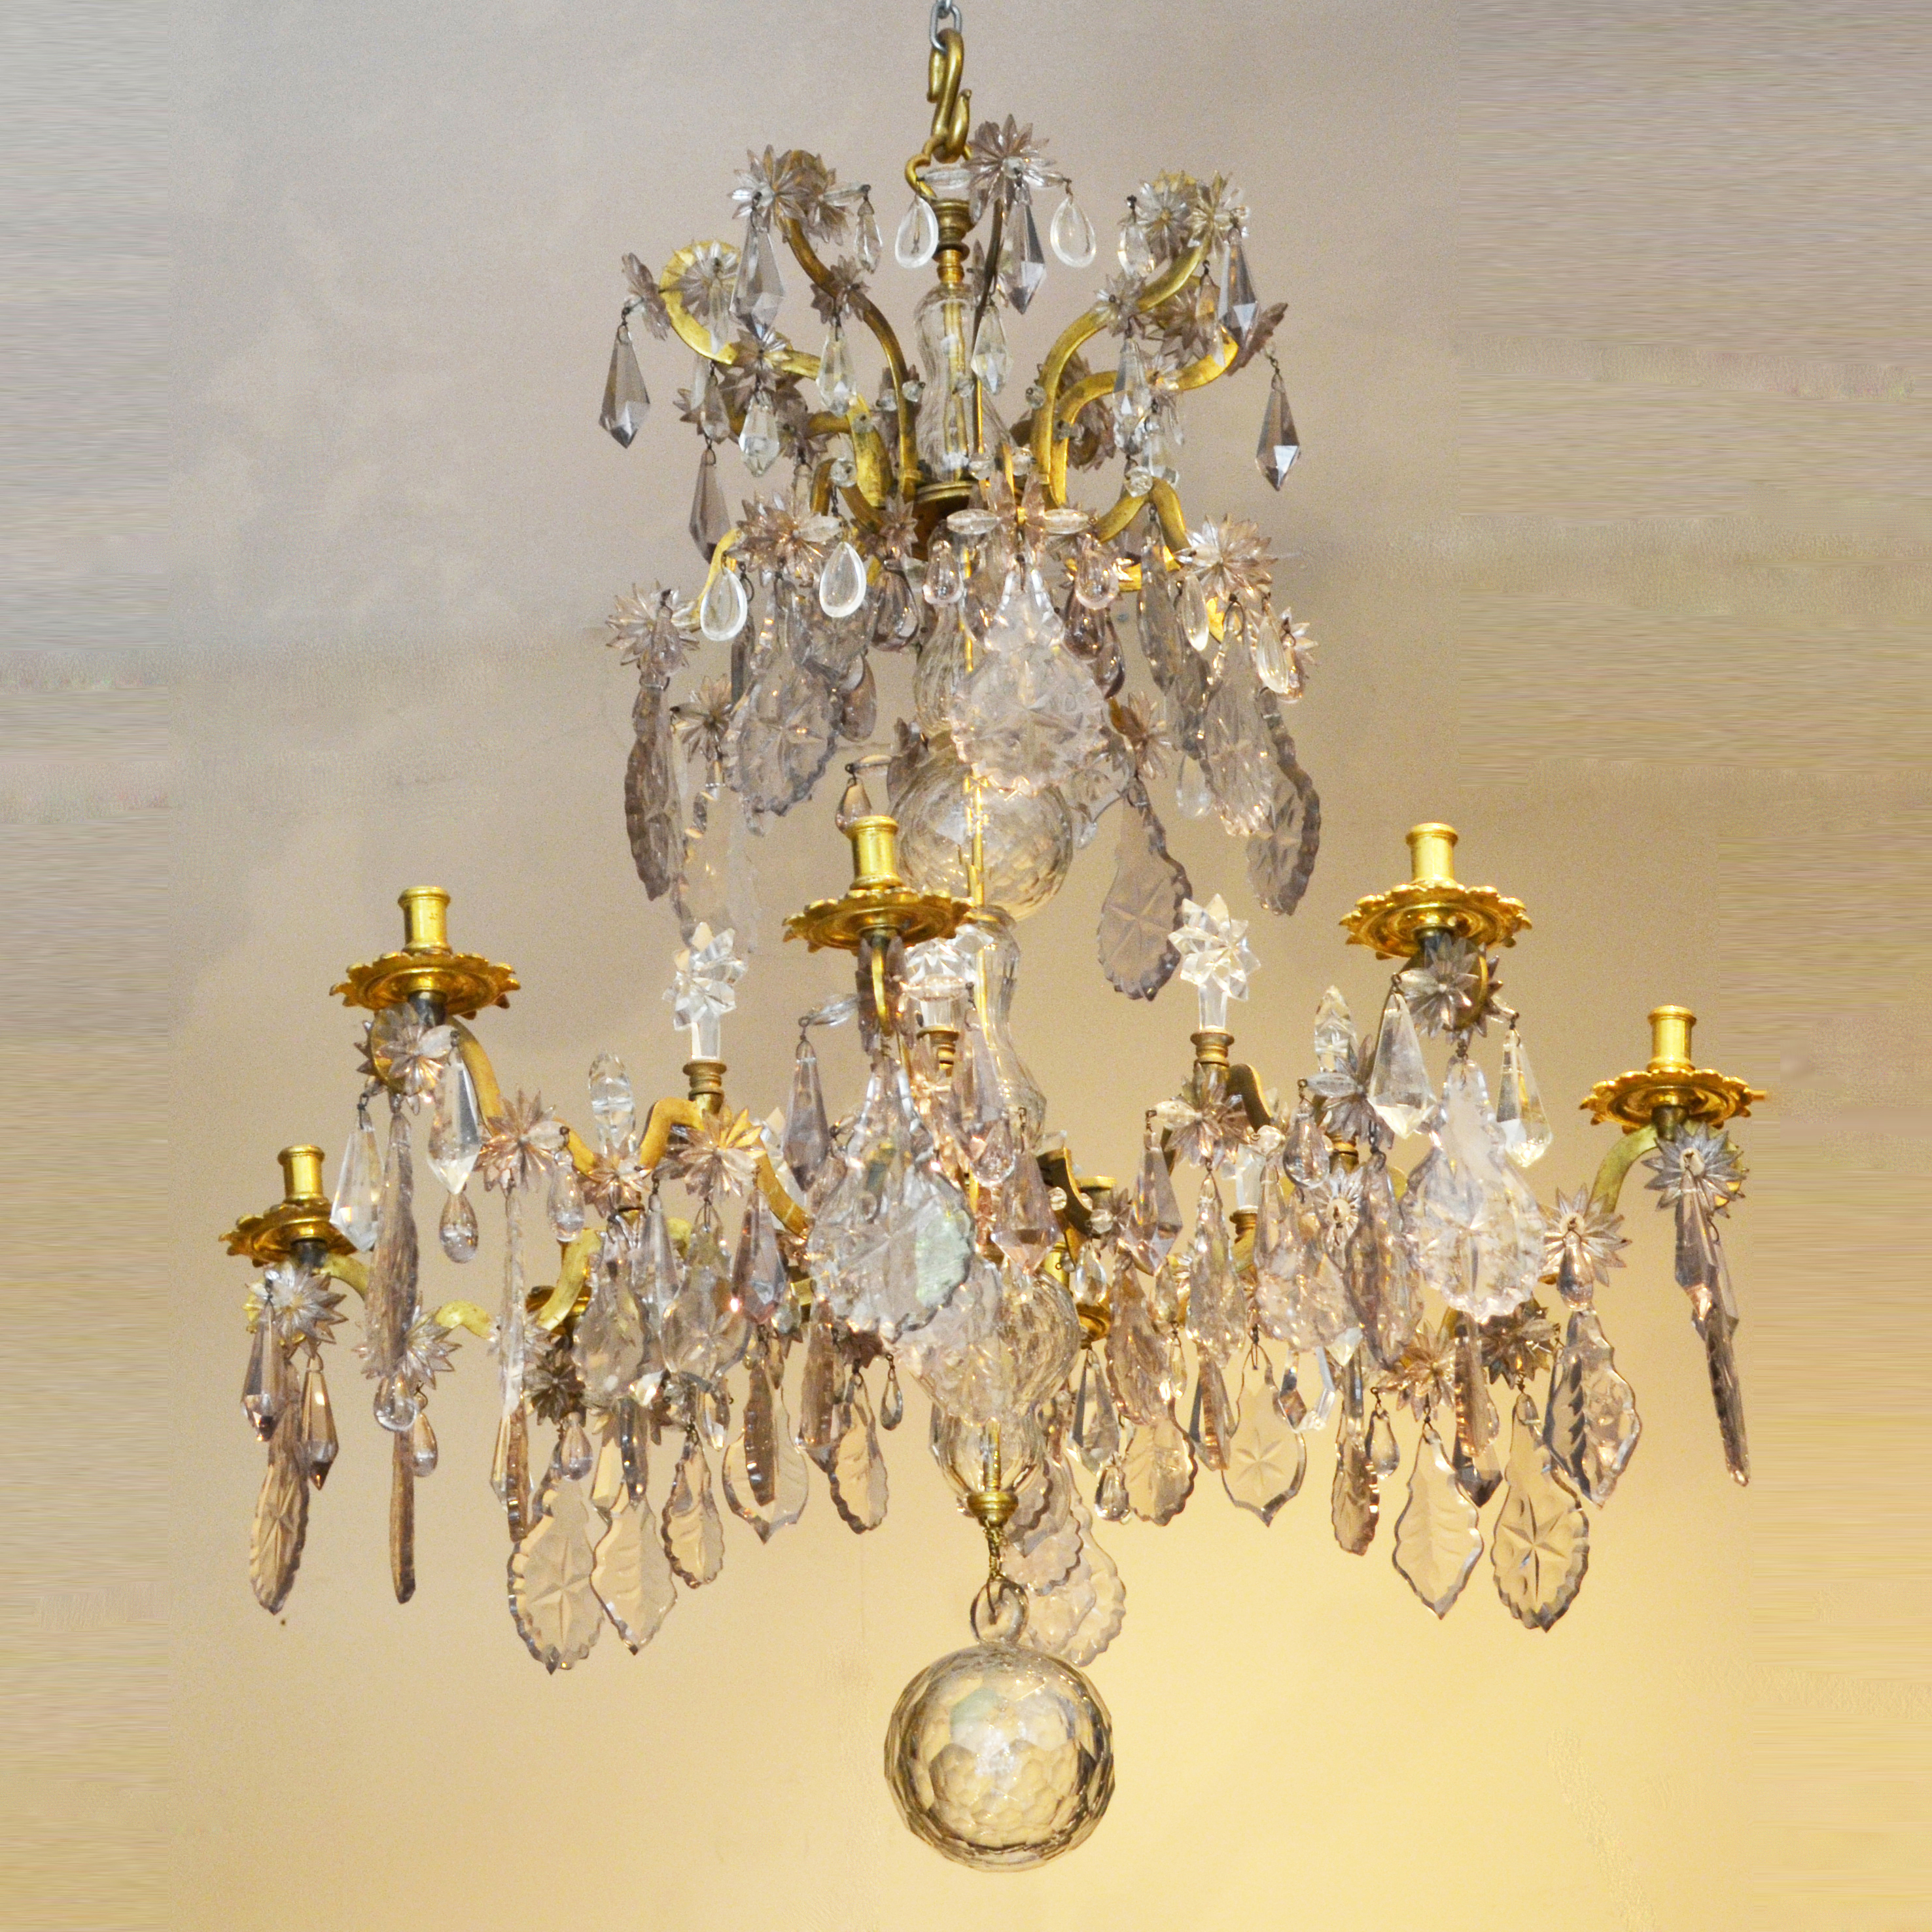 Louis xv gilt bronze and glass chandelier robin martin antiques louis xv gilt bronze and glass chandelier aloadofball Gallery